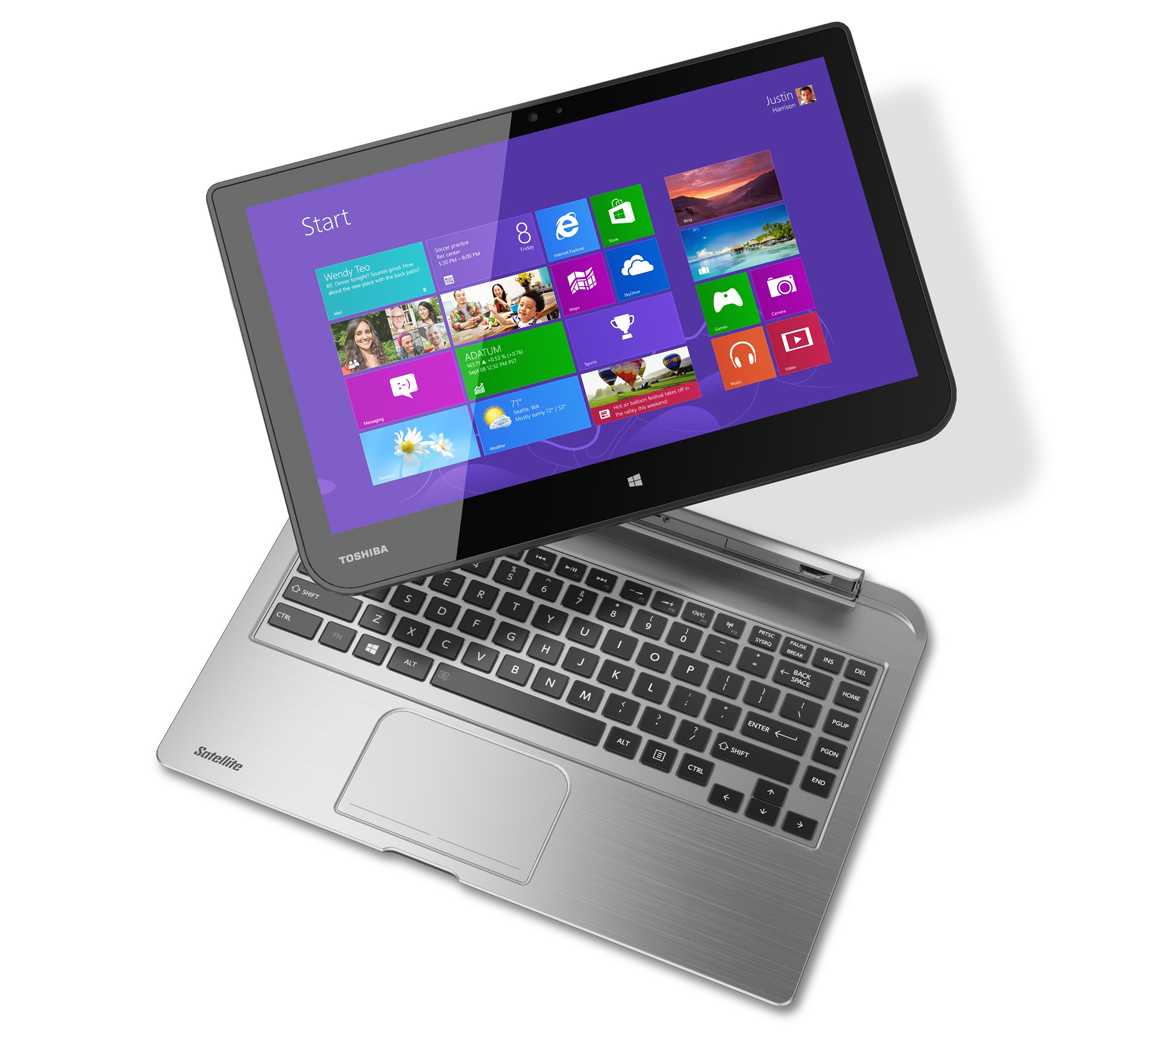 Toshiba Intros New Satellites The Nd15t Notebook Encore